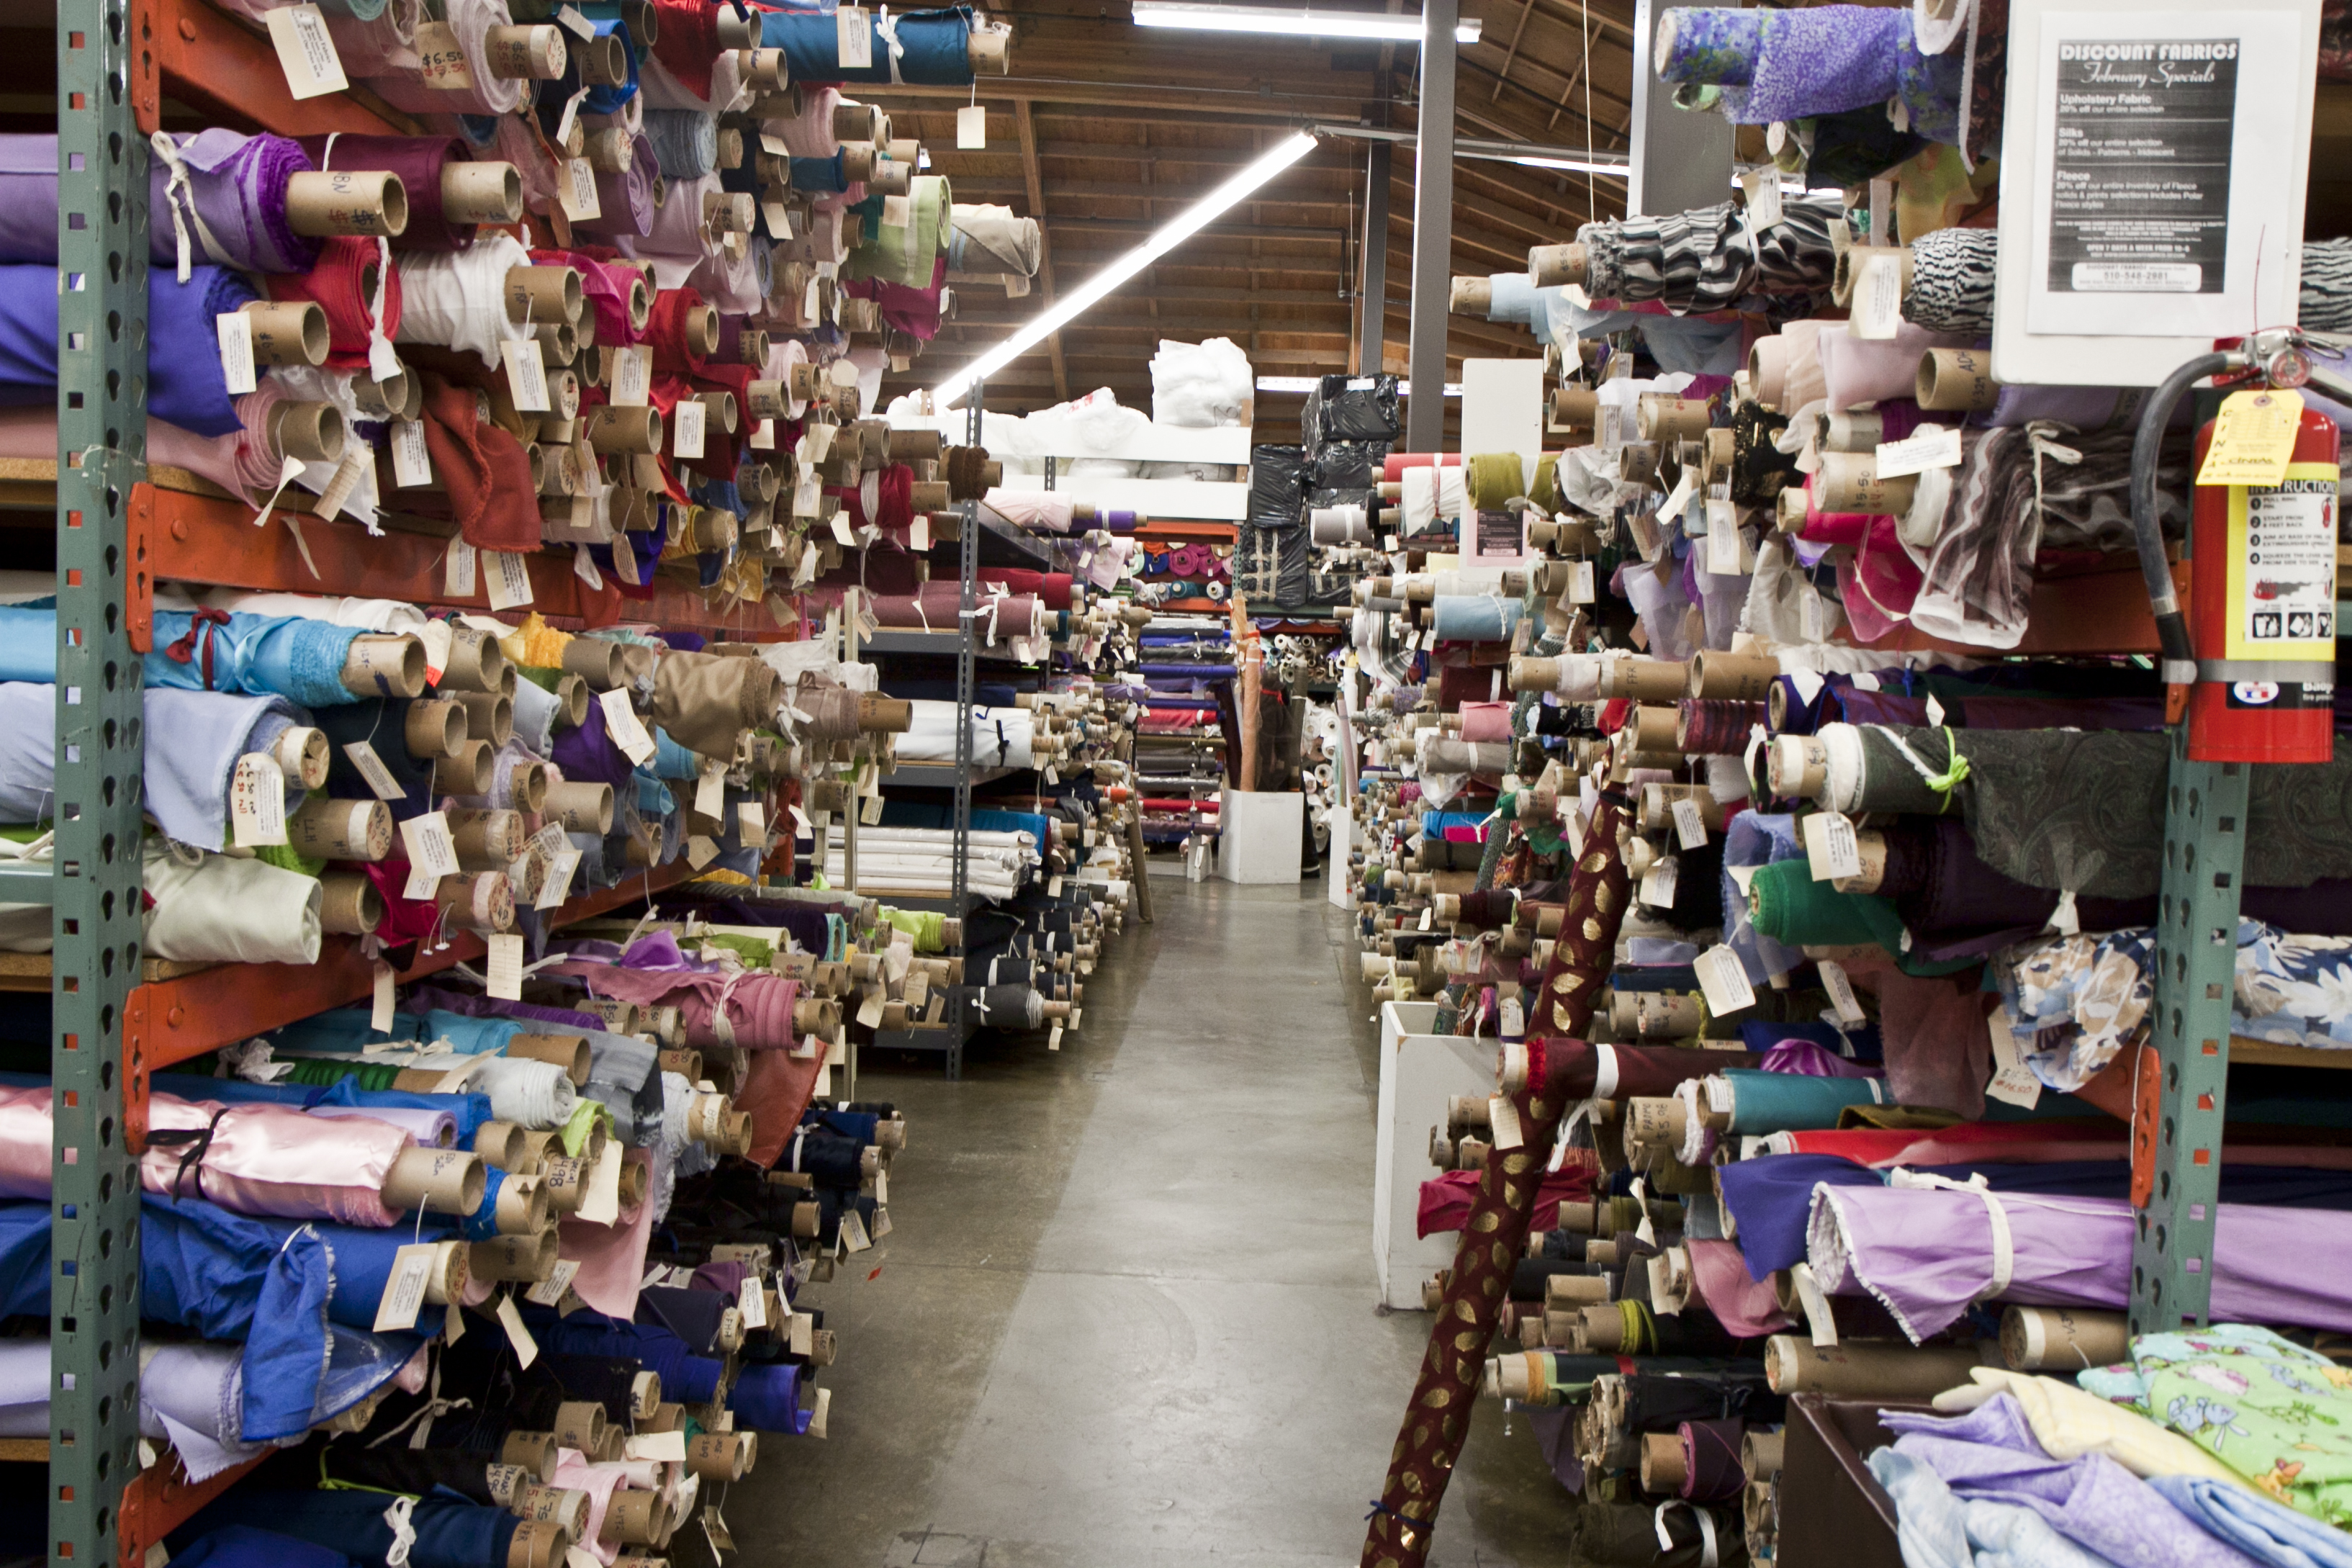 Magasin D Usine Ile De France Big Crazy Fabric Warehouse As I See It